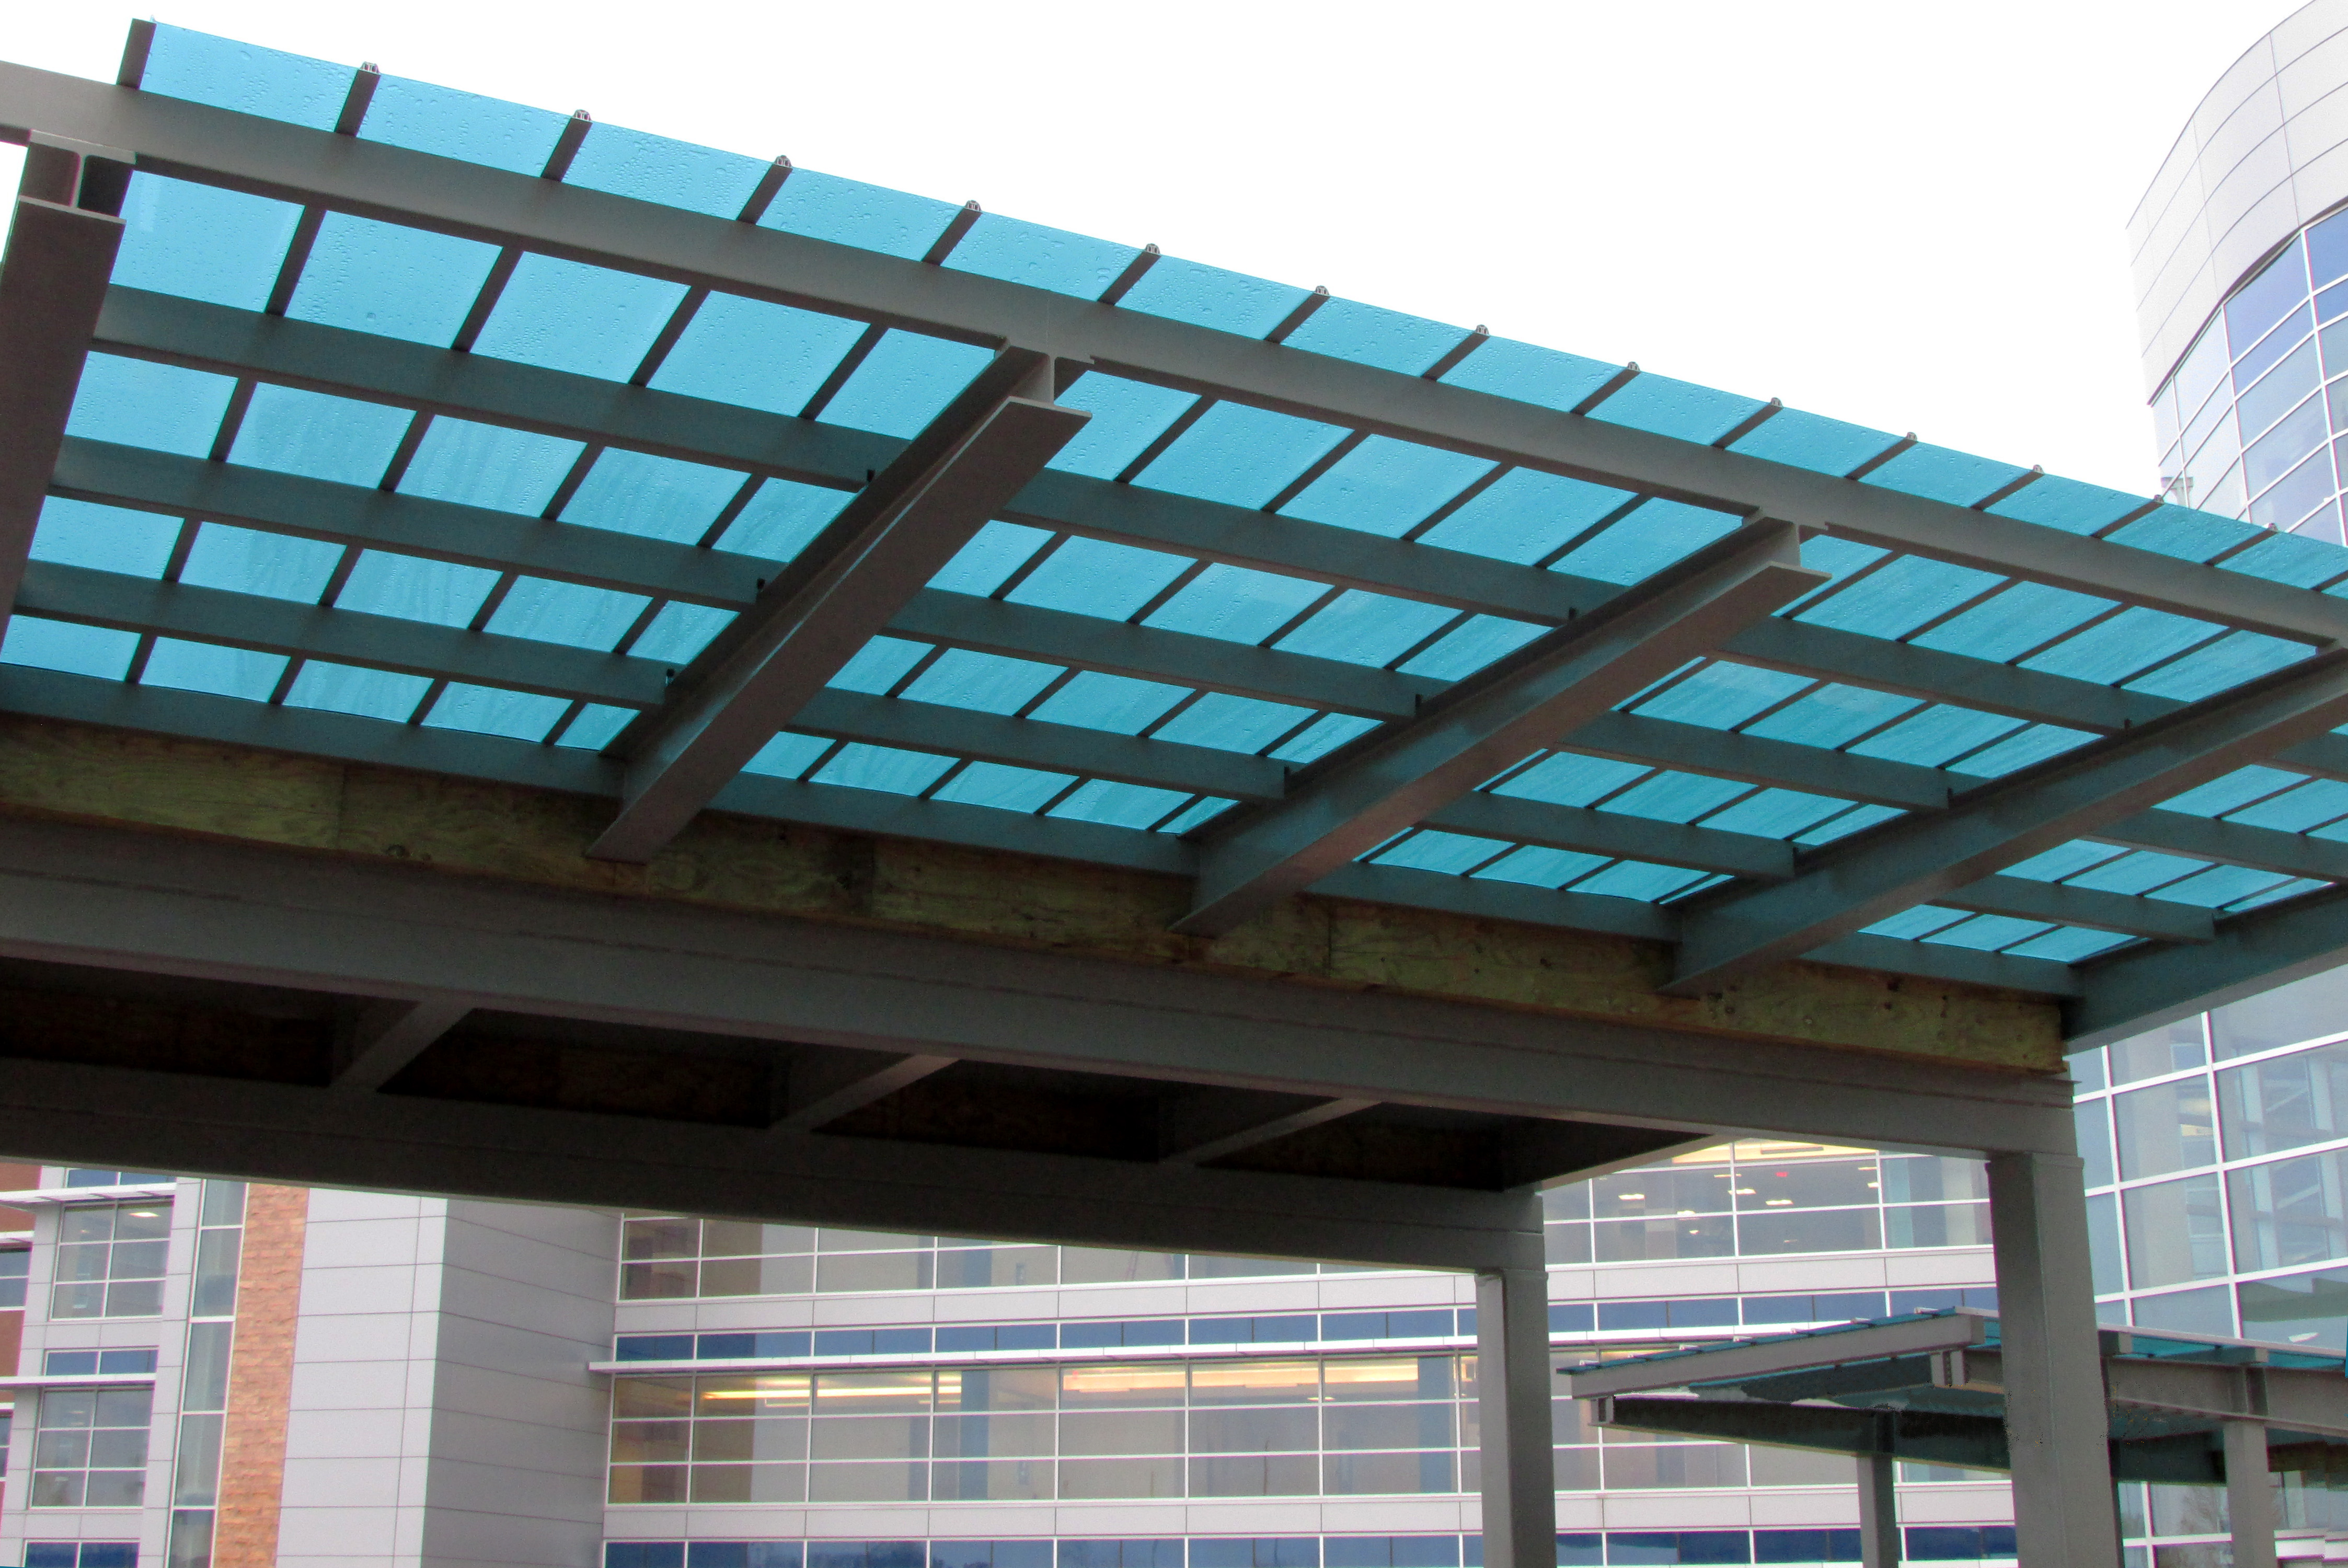 VA Health Center Charlotte NC & Canopy u0026 Walkway Covers - Crystal Structures